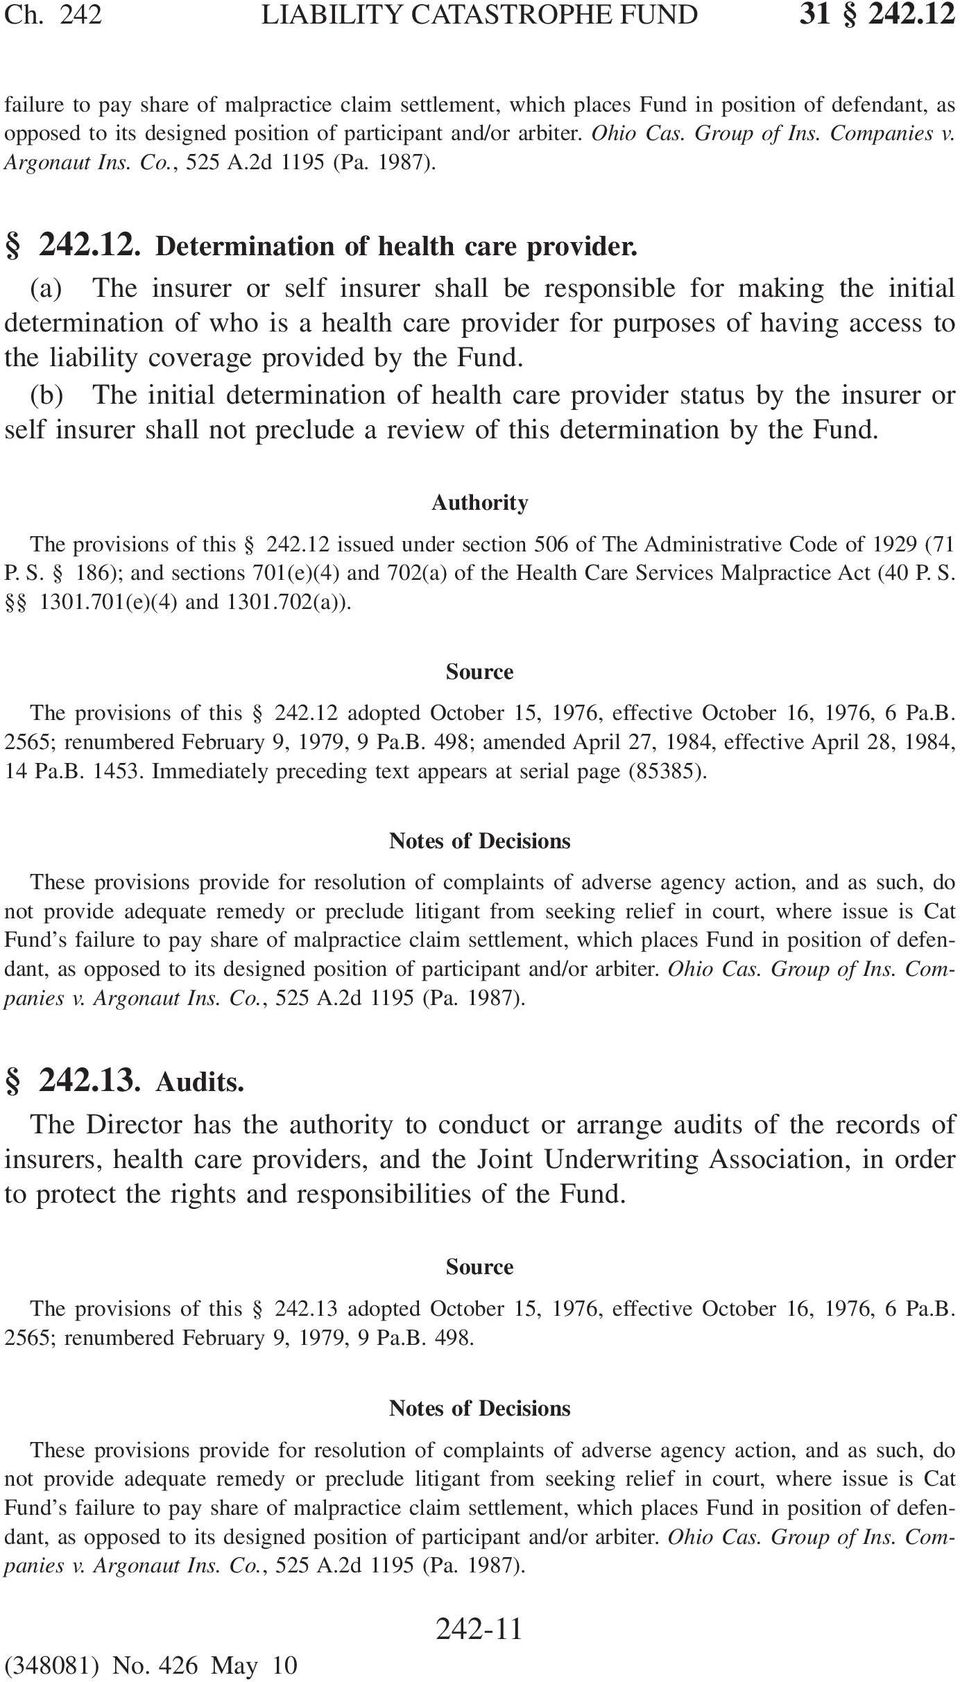 Companies v. Argonaut Ins. Co., 525 A.2d 1195 (Pa. 1987). 242.12. Determination of health care provider.